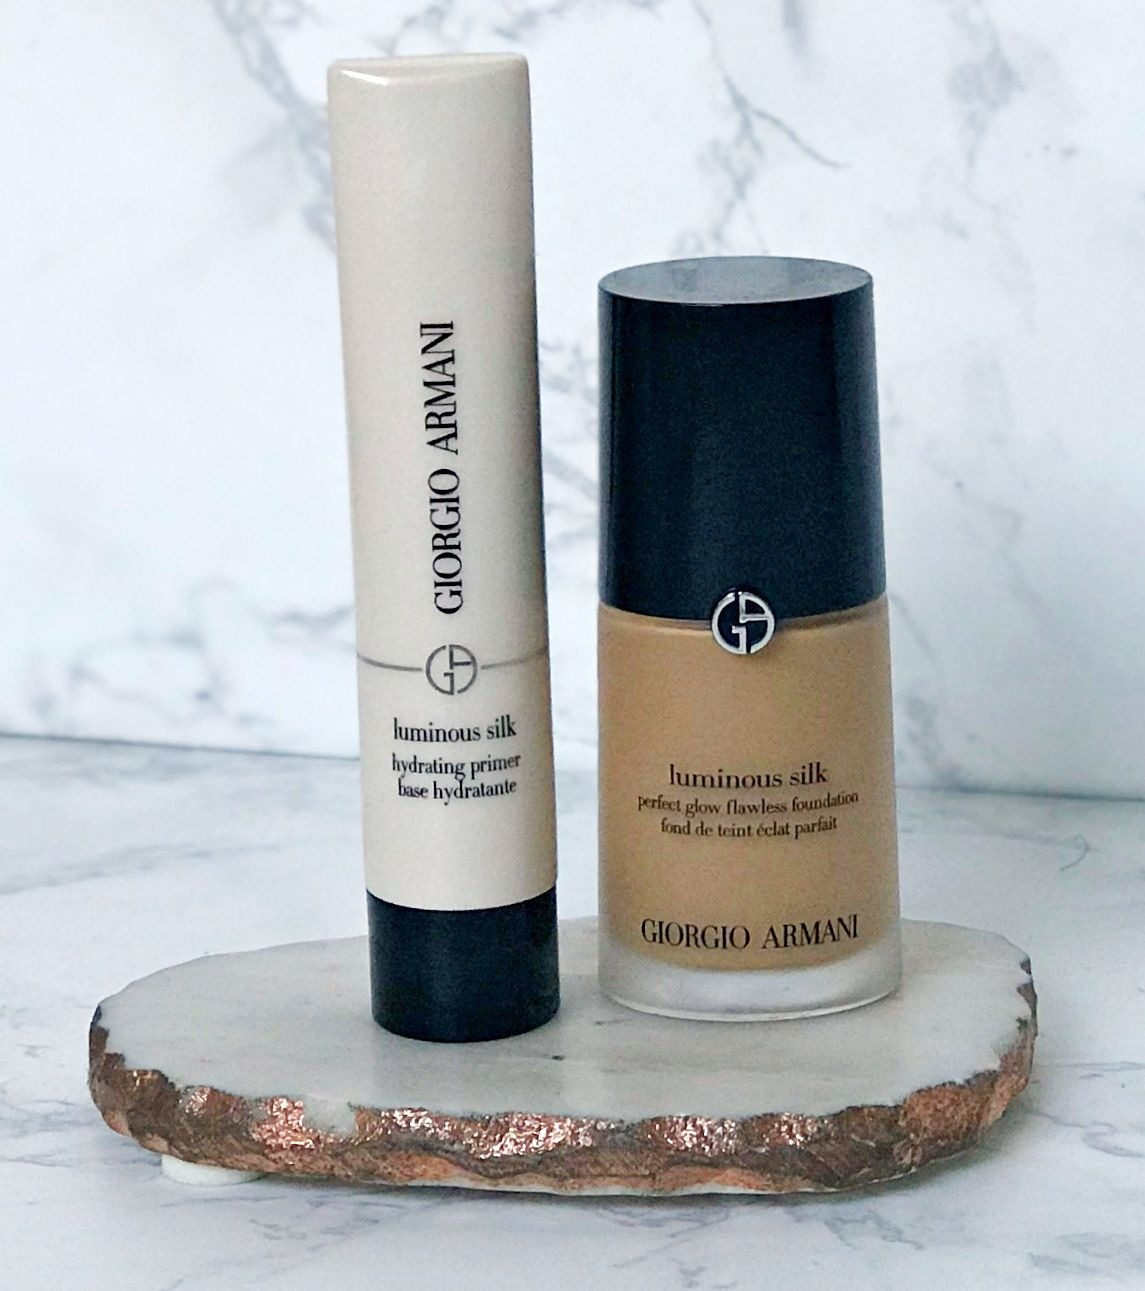 Giorgio Armani Luminous Silk, Giorgio Armani Luminous Silk Hydrating Primer Review